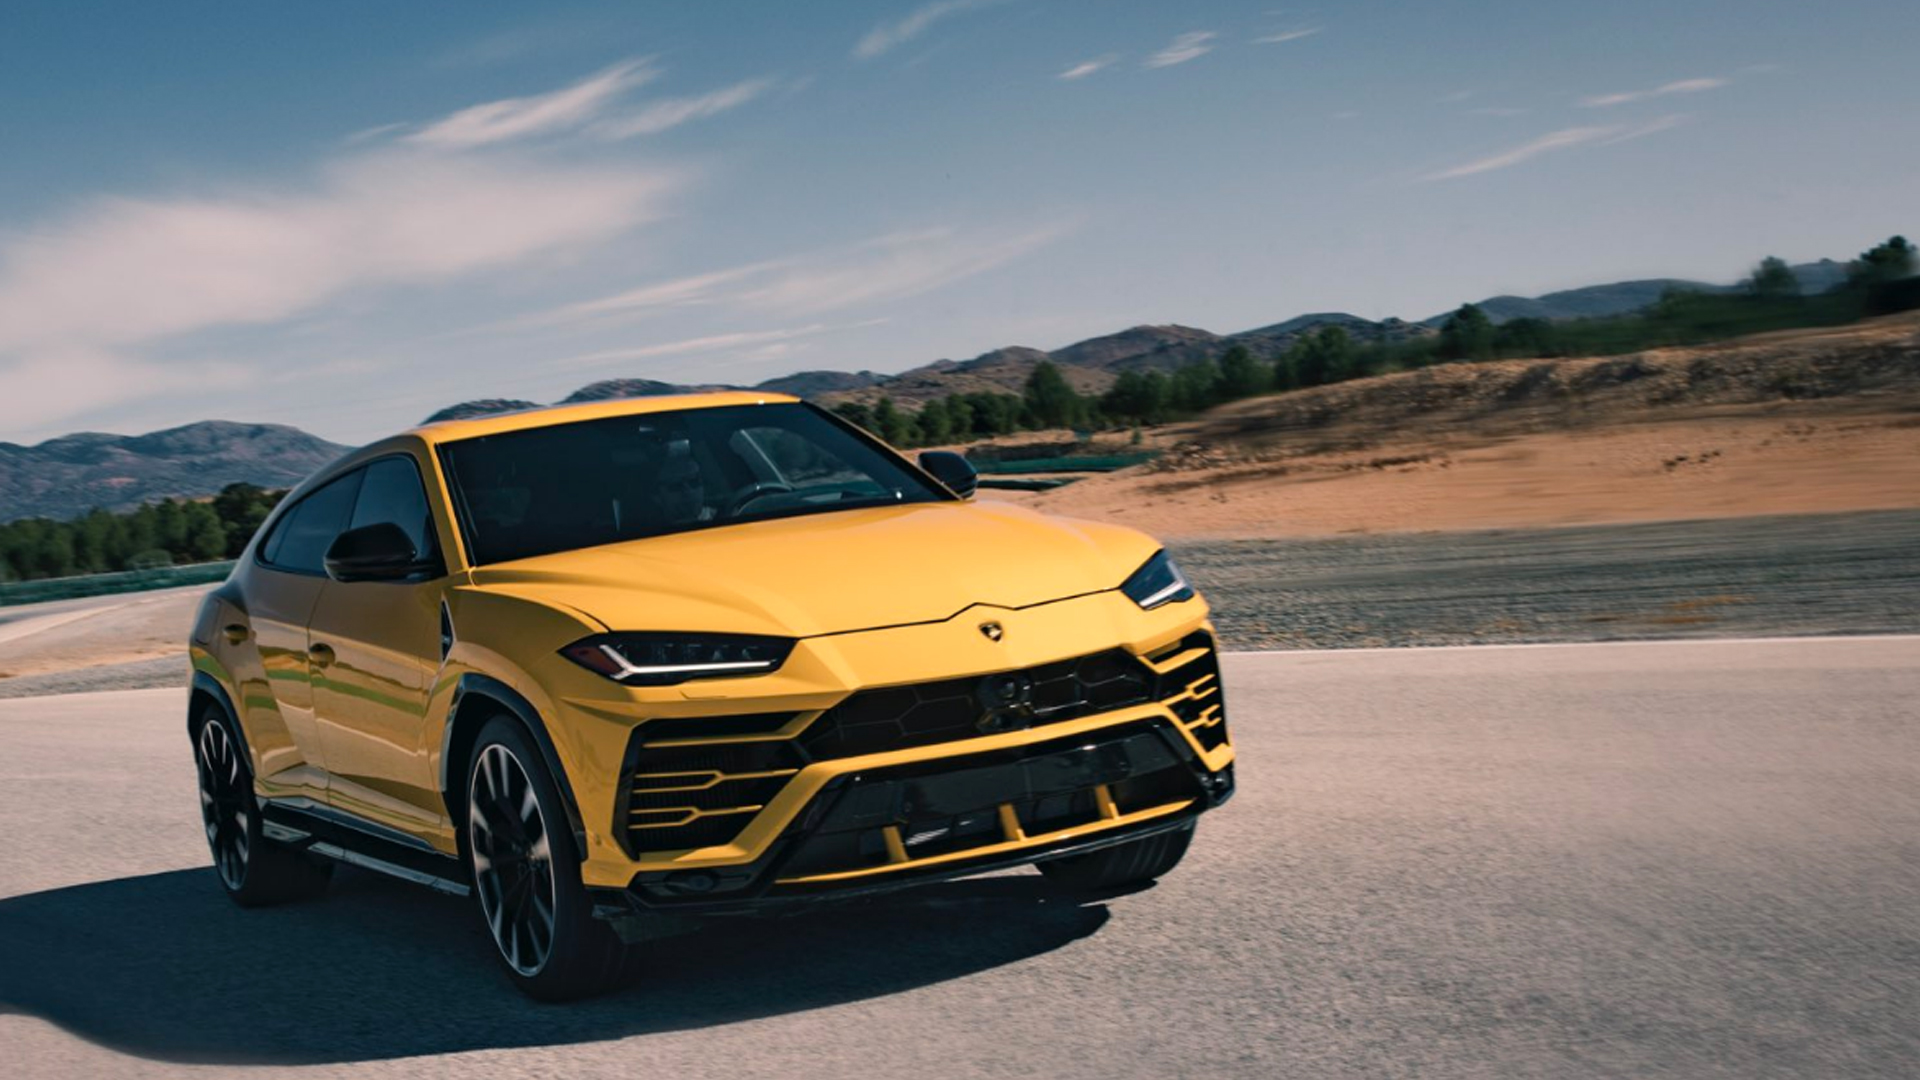 lamborghini urus 2018 - price, mileage, reviews, specification